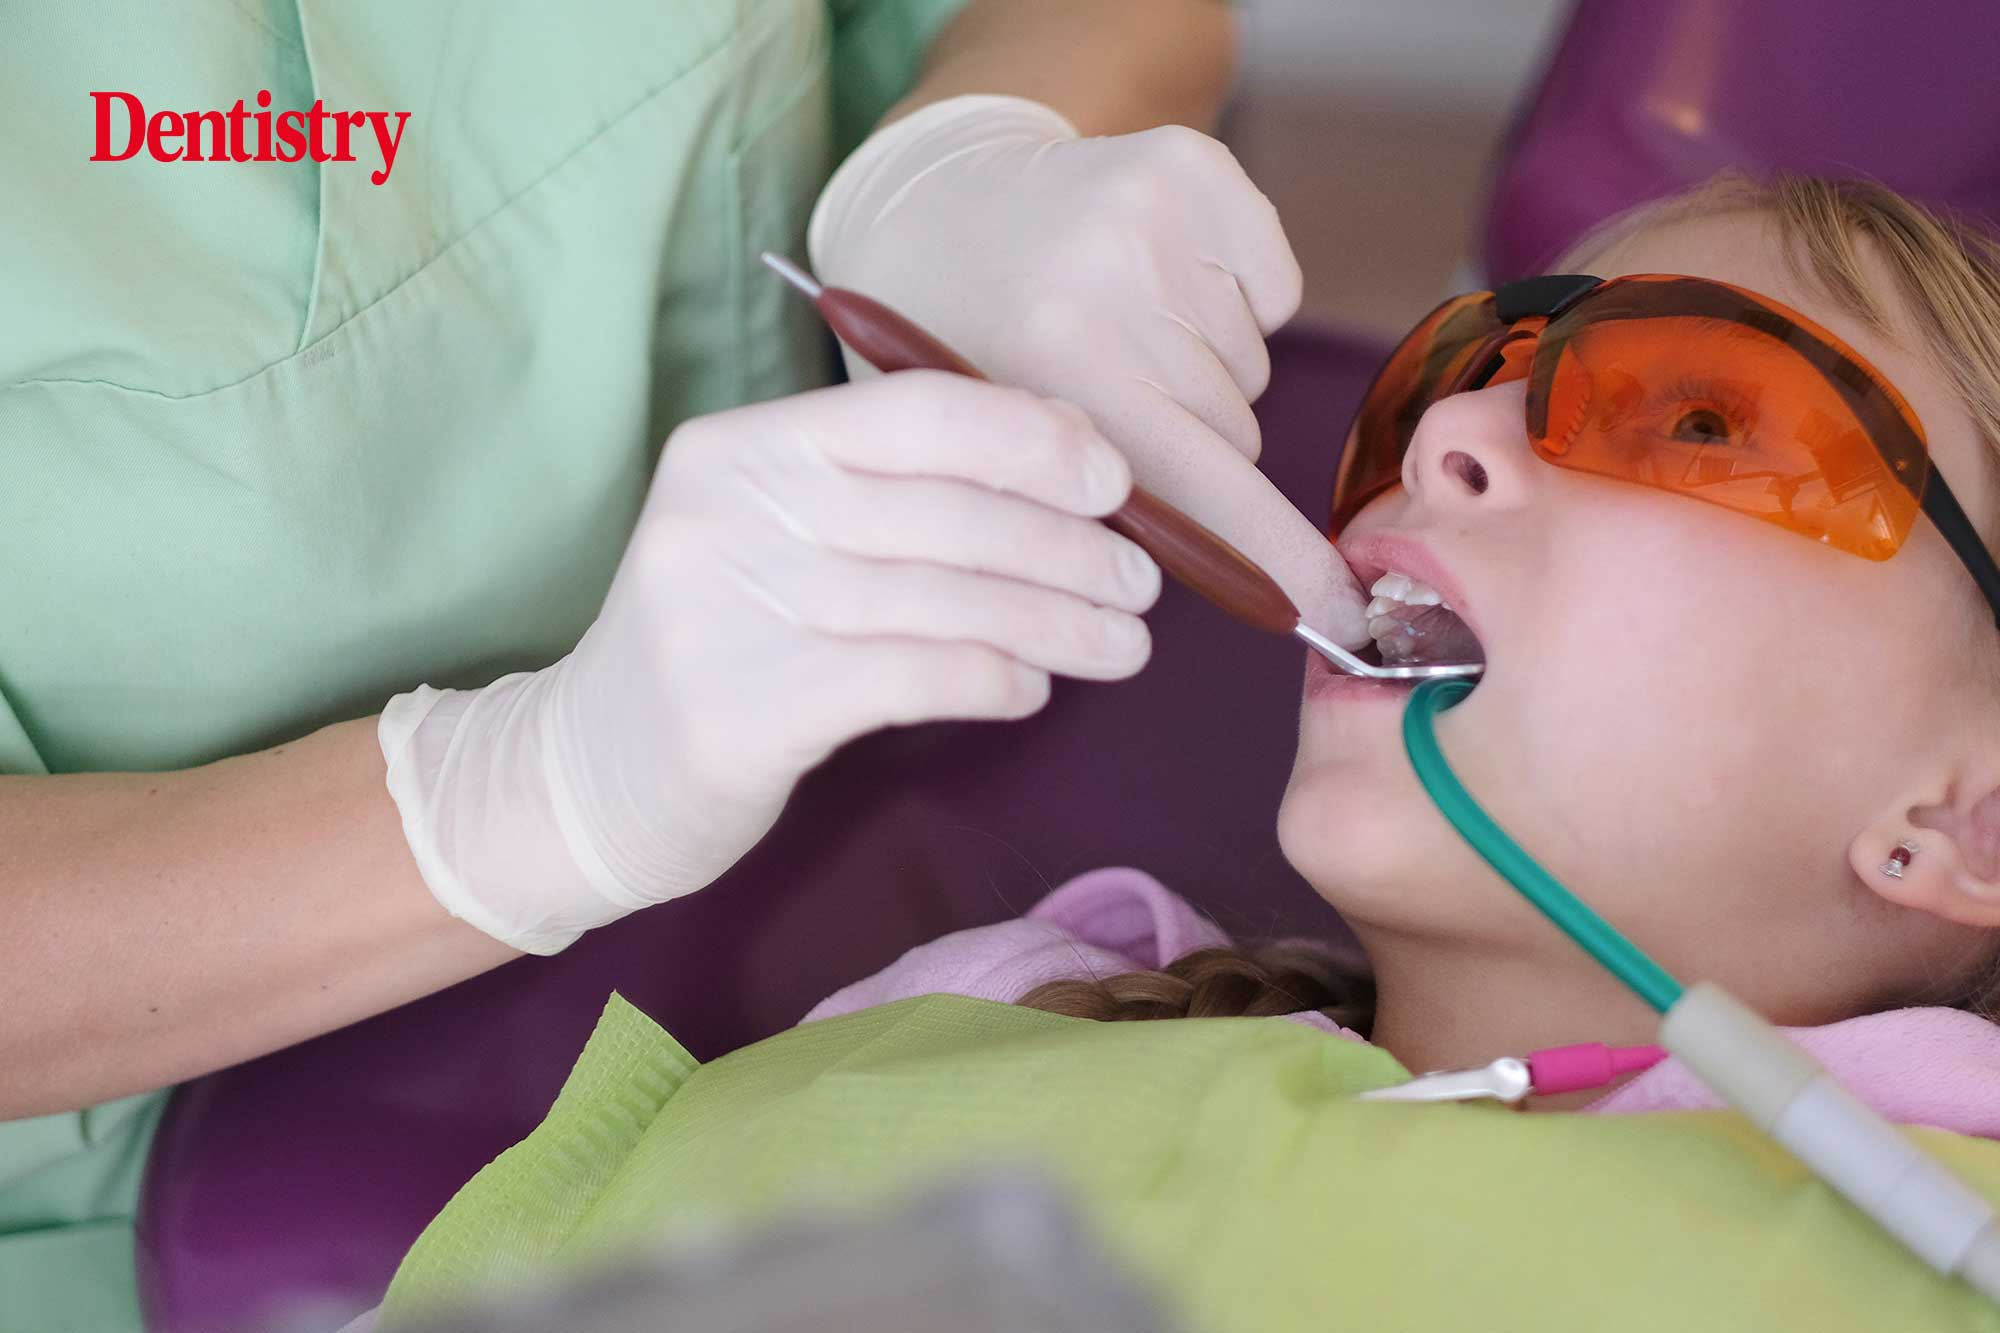 Specialists in paediatric dentistry 'should be trebled' to meet UK demands